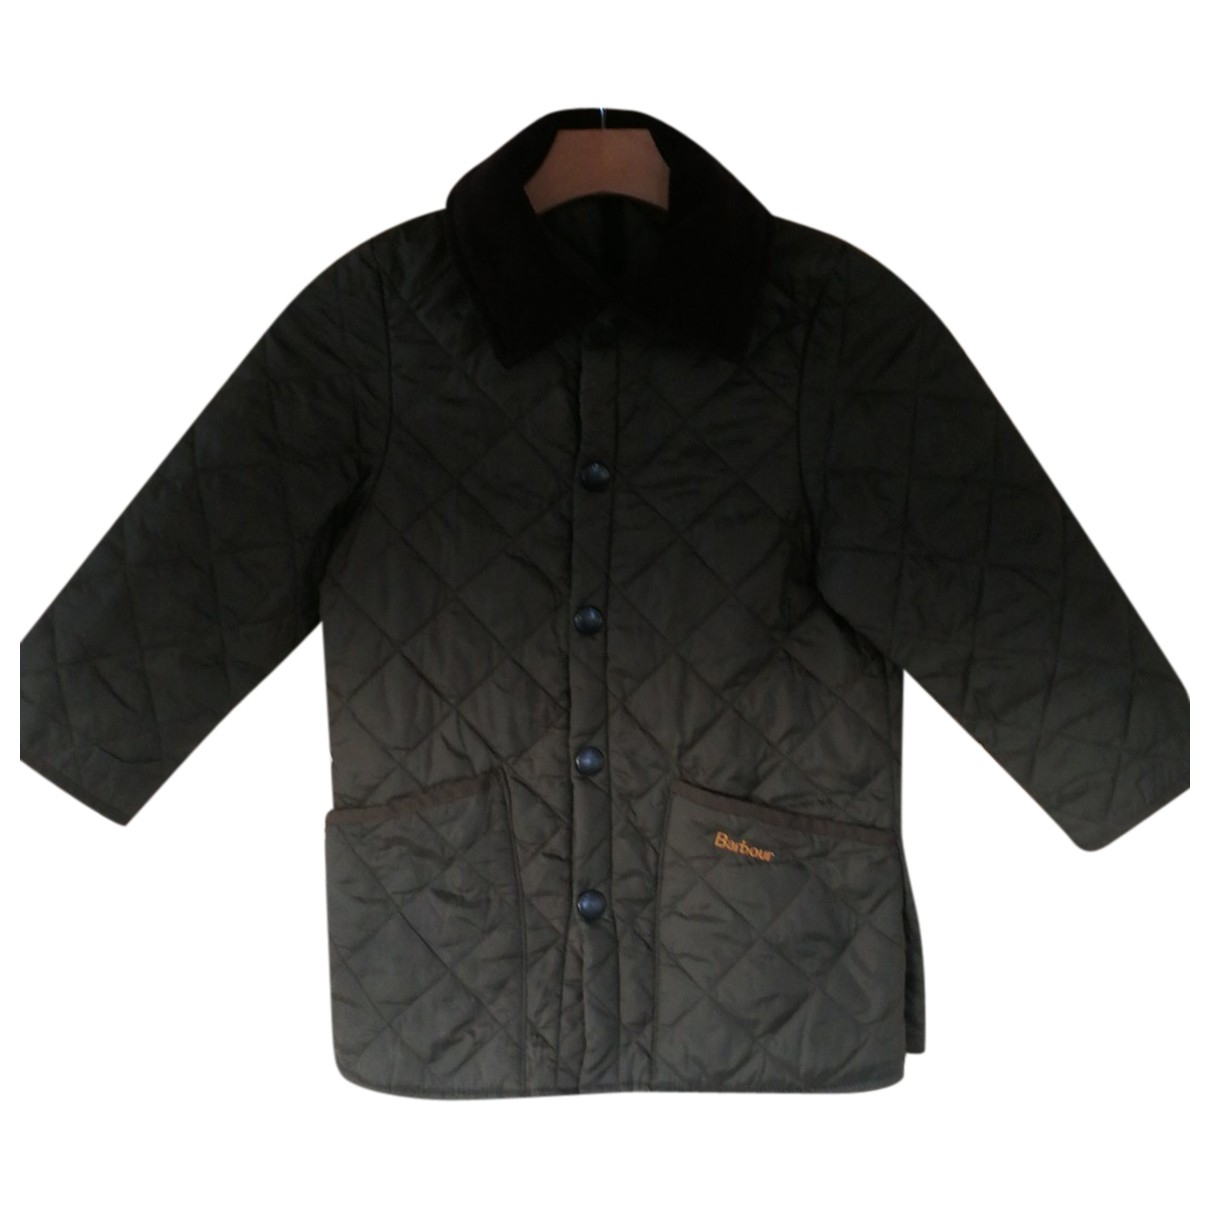 Barbour N Green jacket & coat for Kids 12 years - XS FR